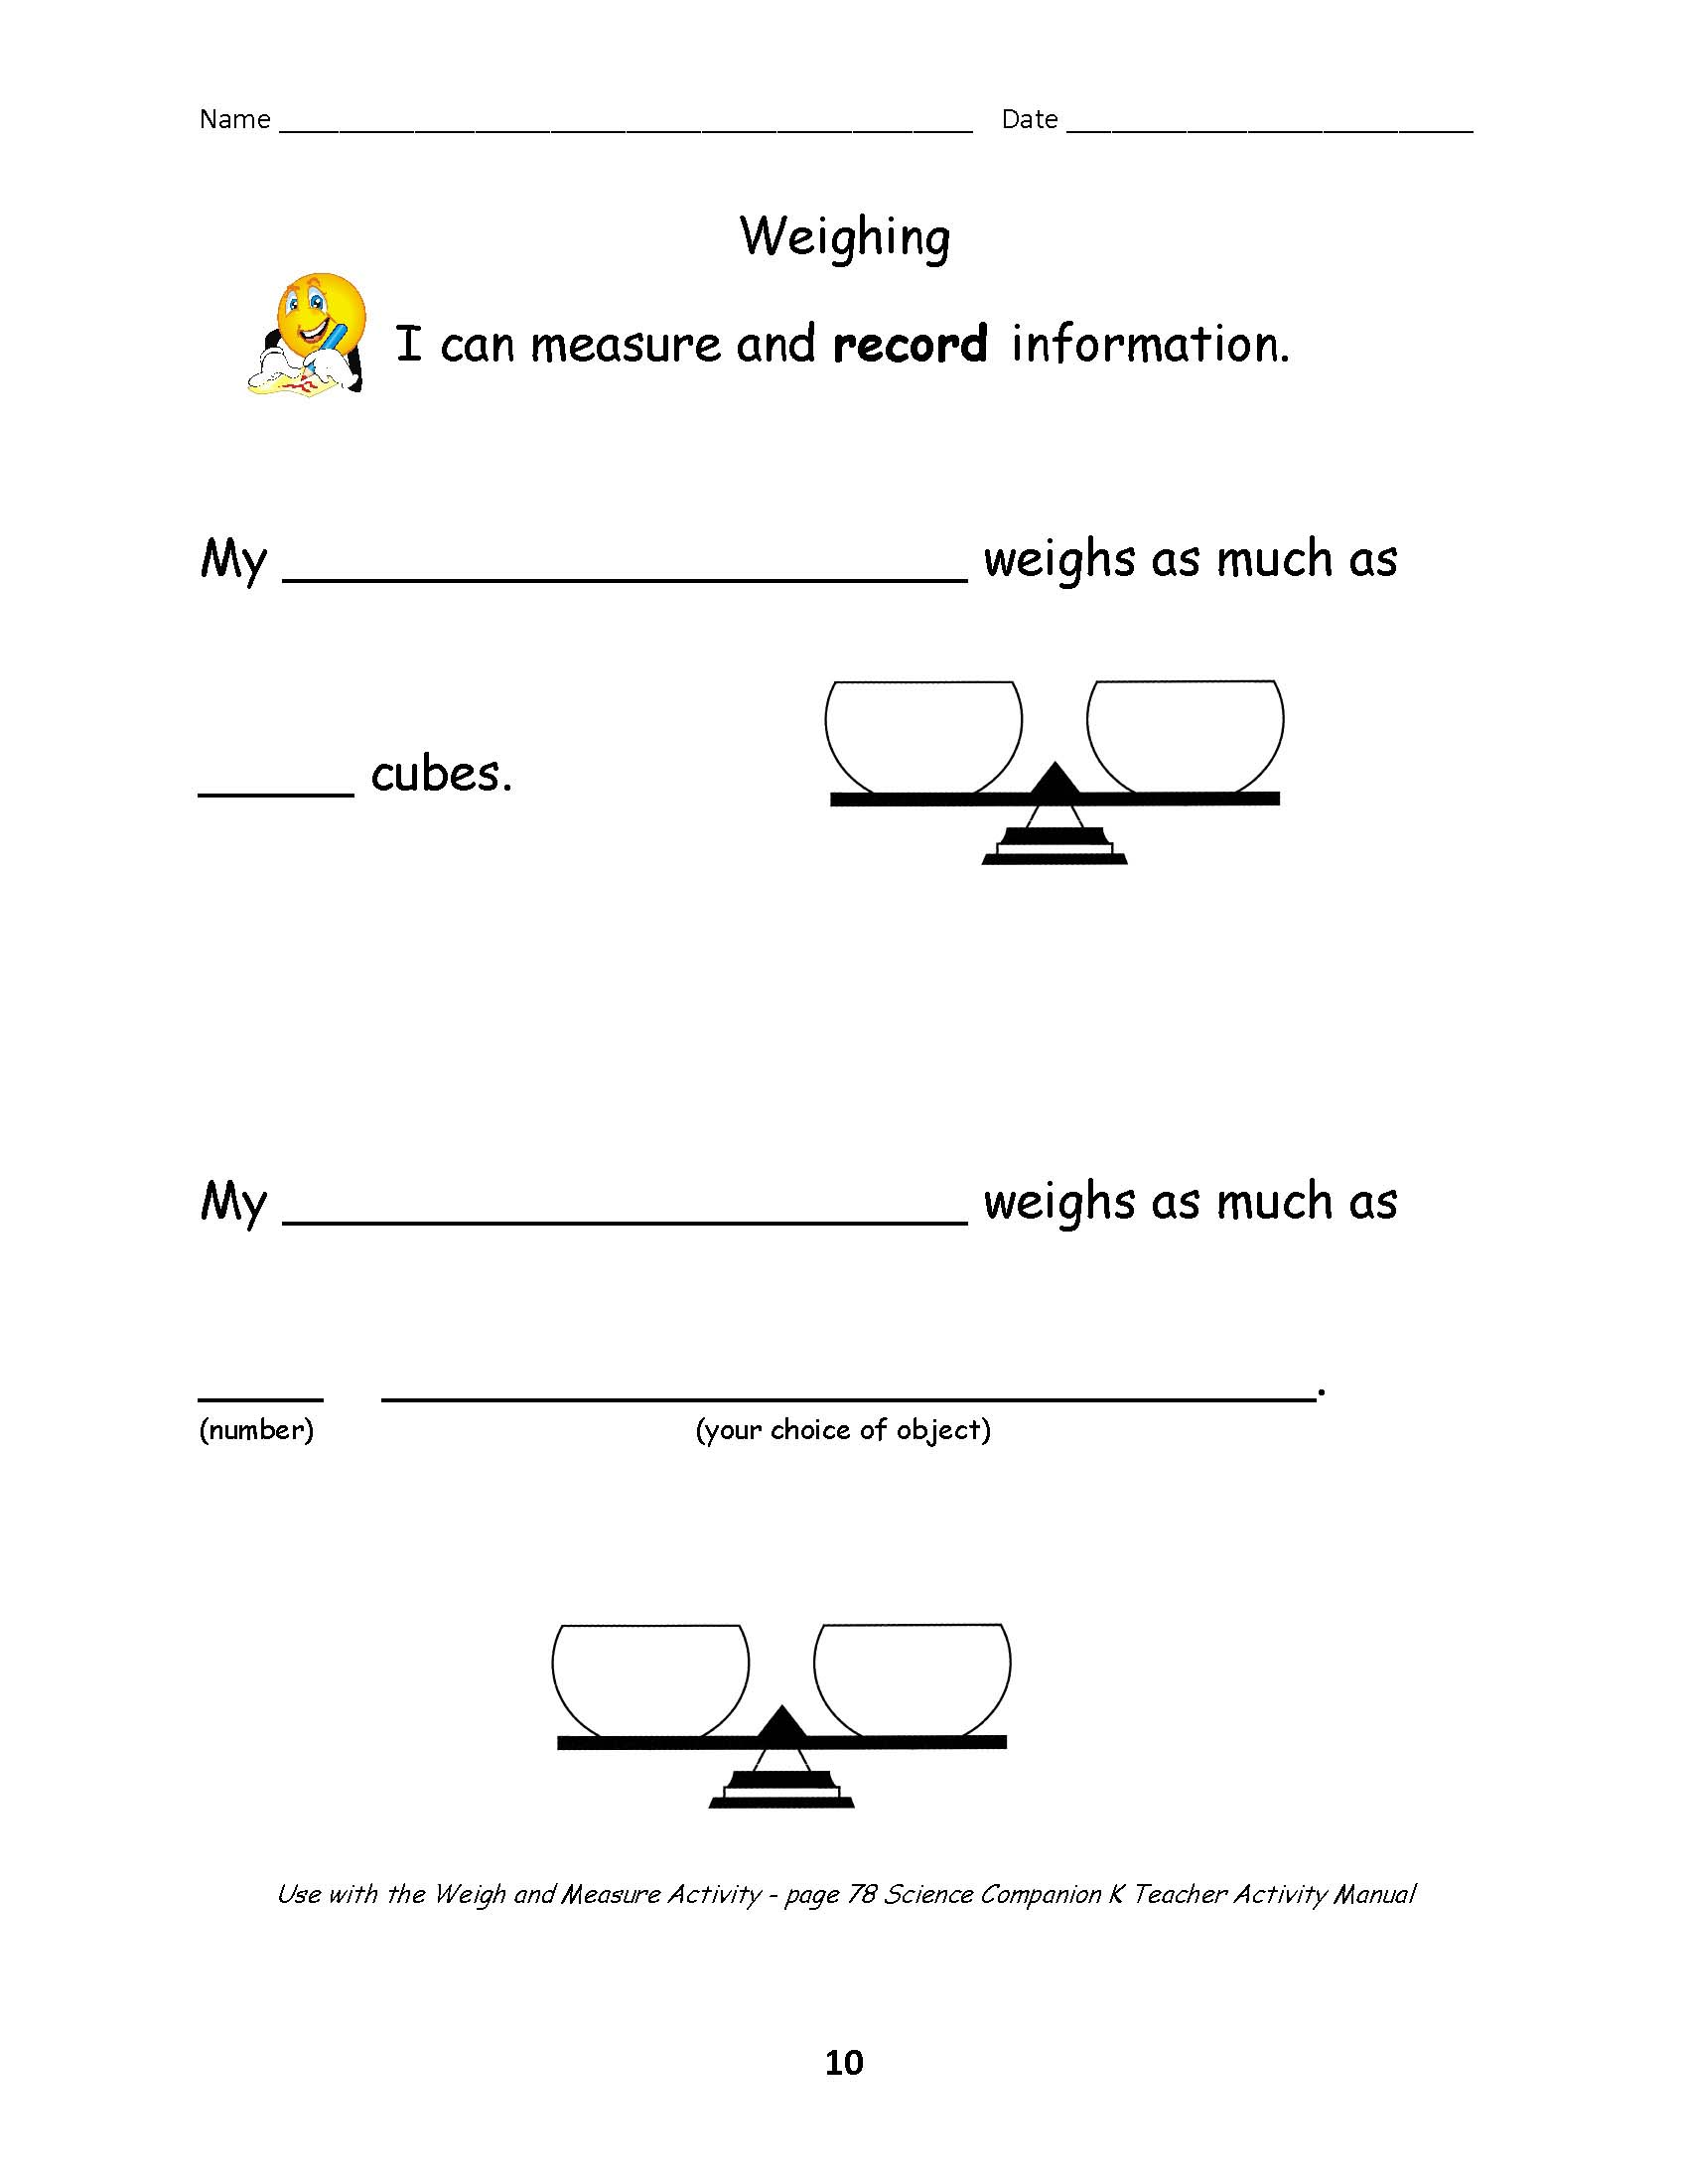 Science and Children Online Connections – Mythbusters Scientific Method Worksheet